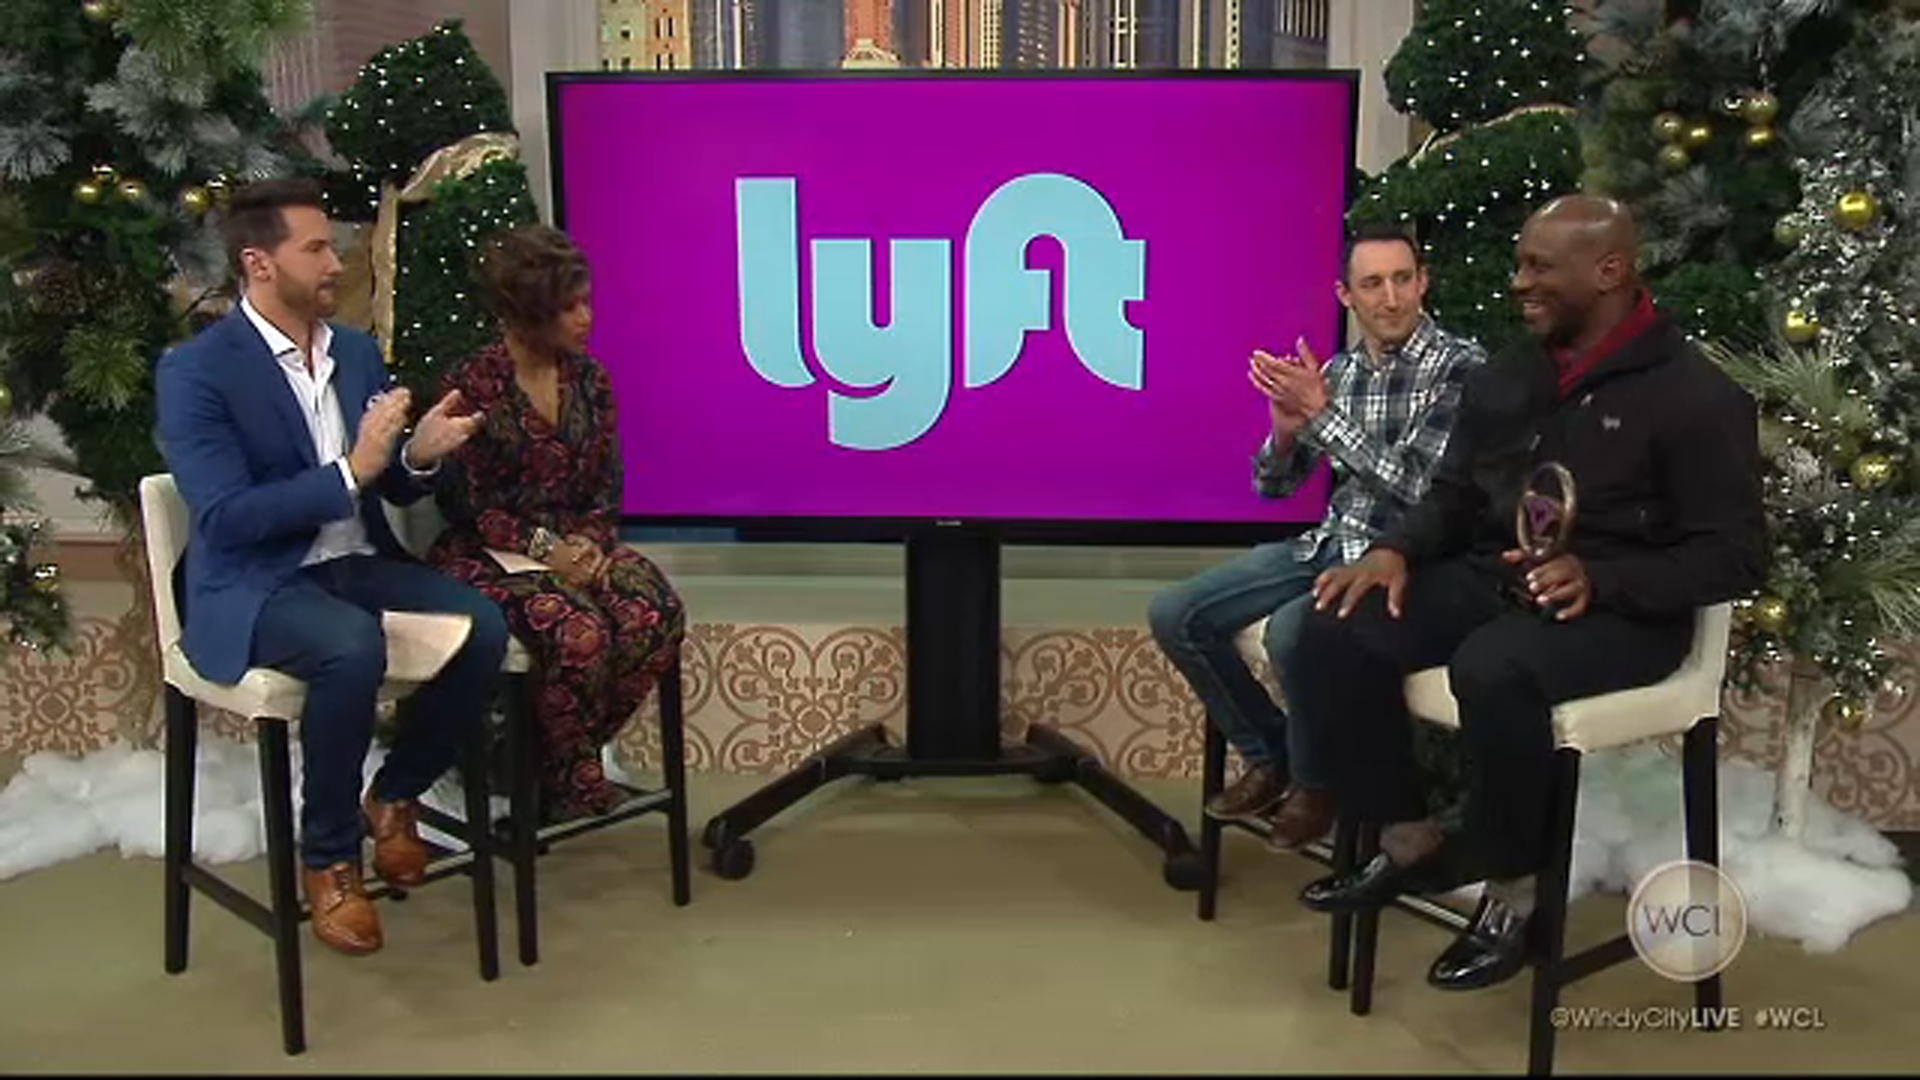 Ride-sharing company Lyft wants to get you to and from holiday parties safely this season.